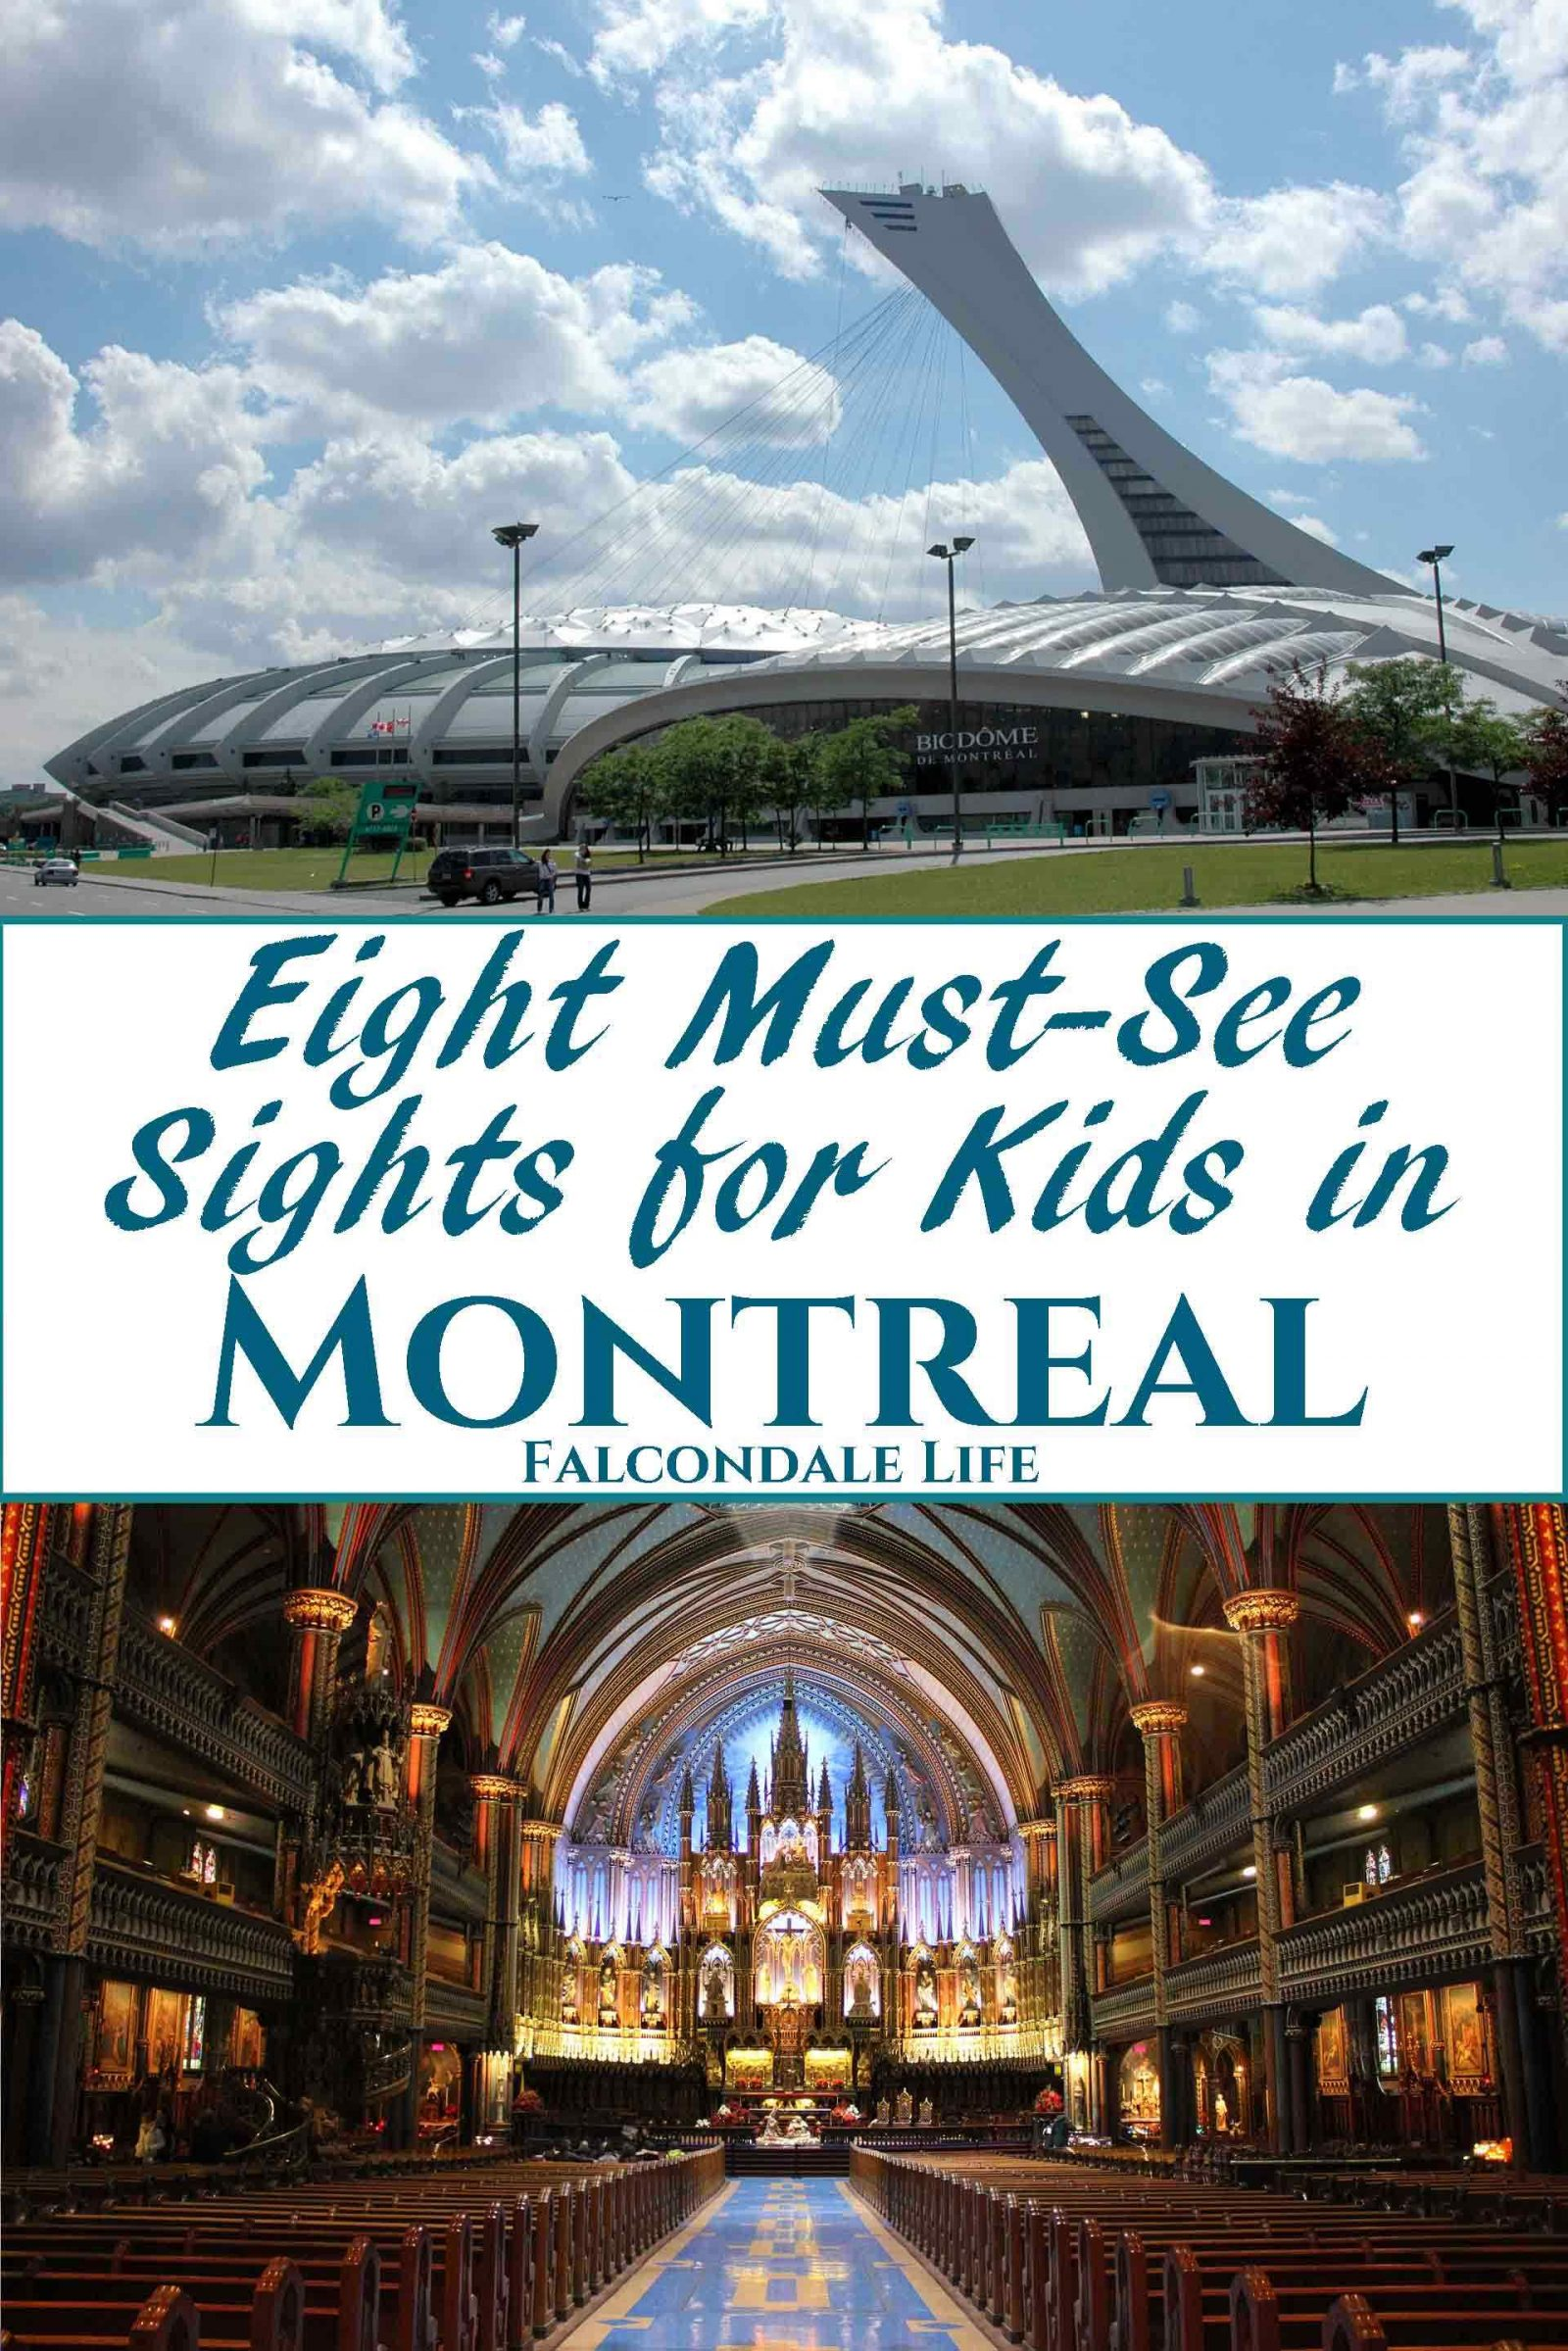 Eight must see sights for kids in Montreal on Falcondale Life blog. Guest post by Samara from TinyFry. Biodome Montreal and Notre Dame. There's lots for kids of all ages in Montreal, it's a great family travel destination in Canada.